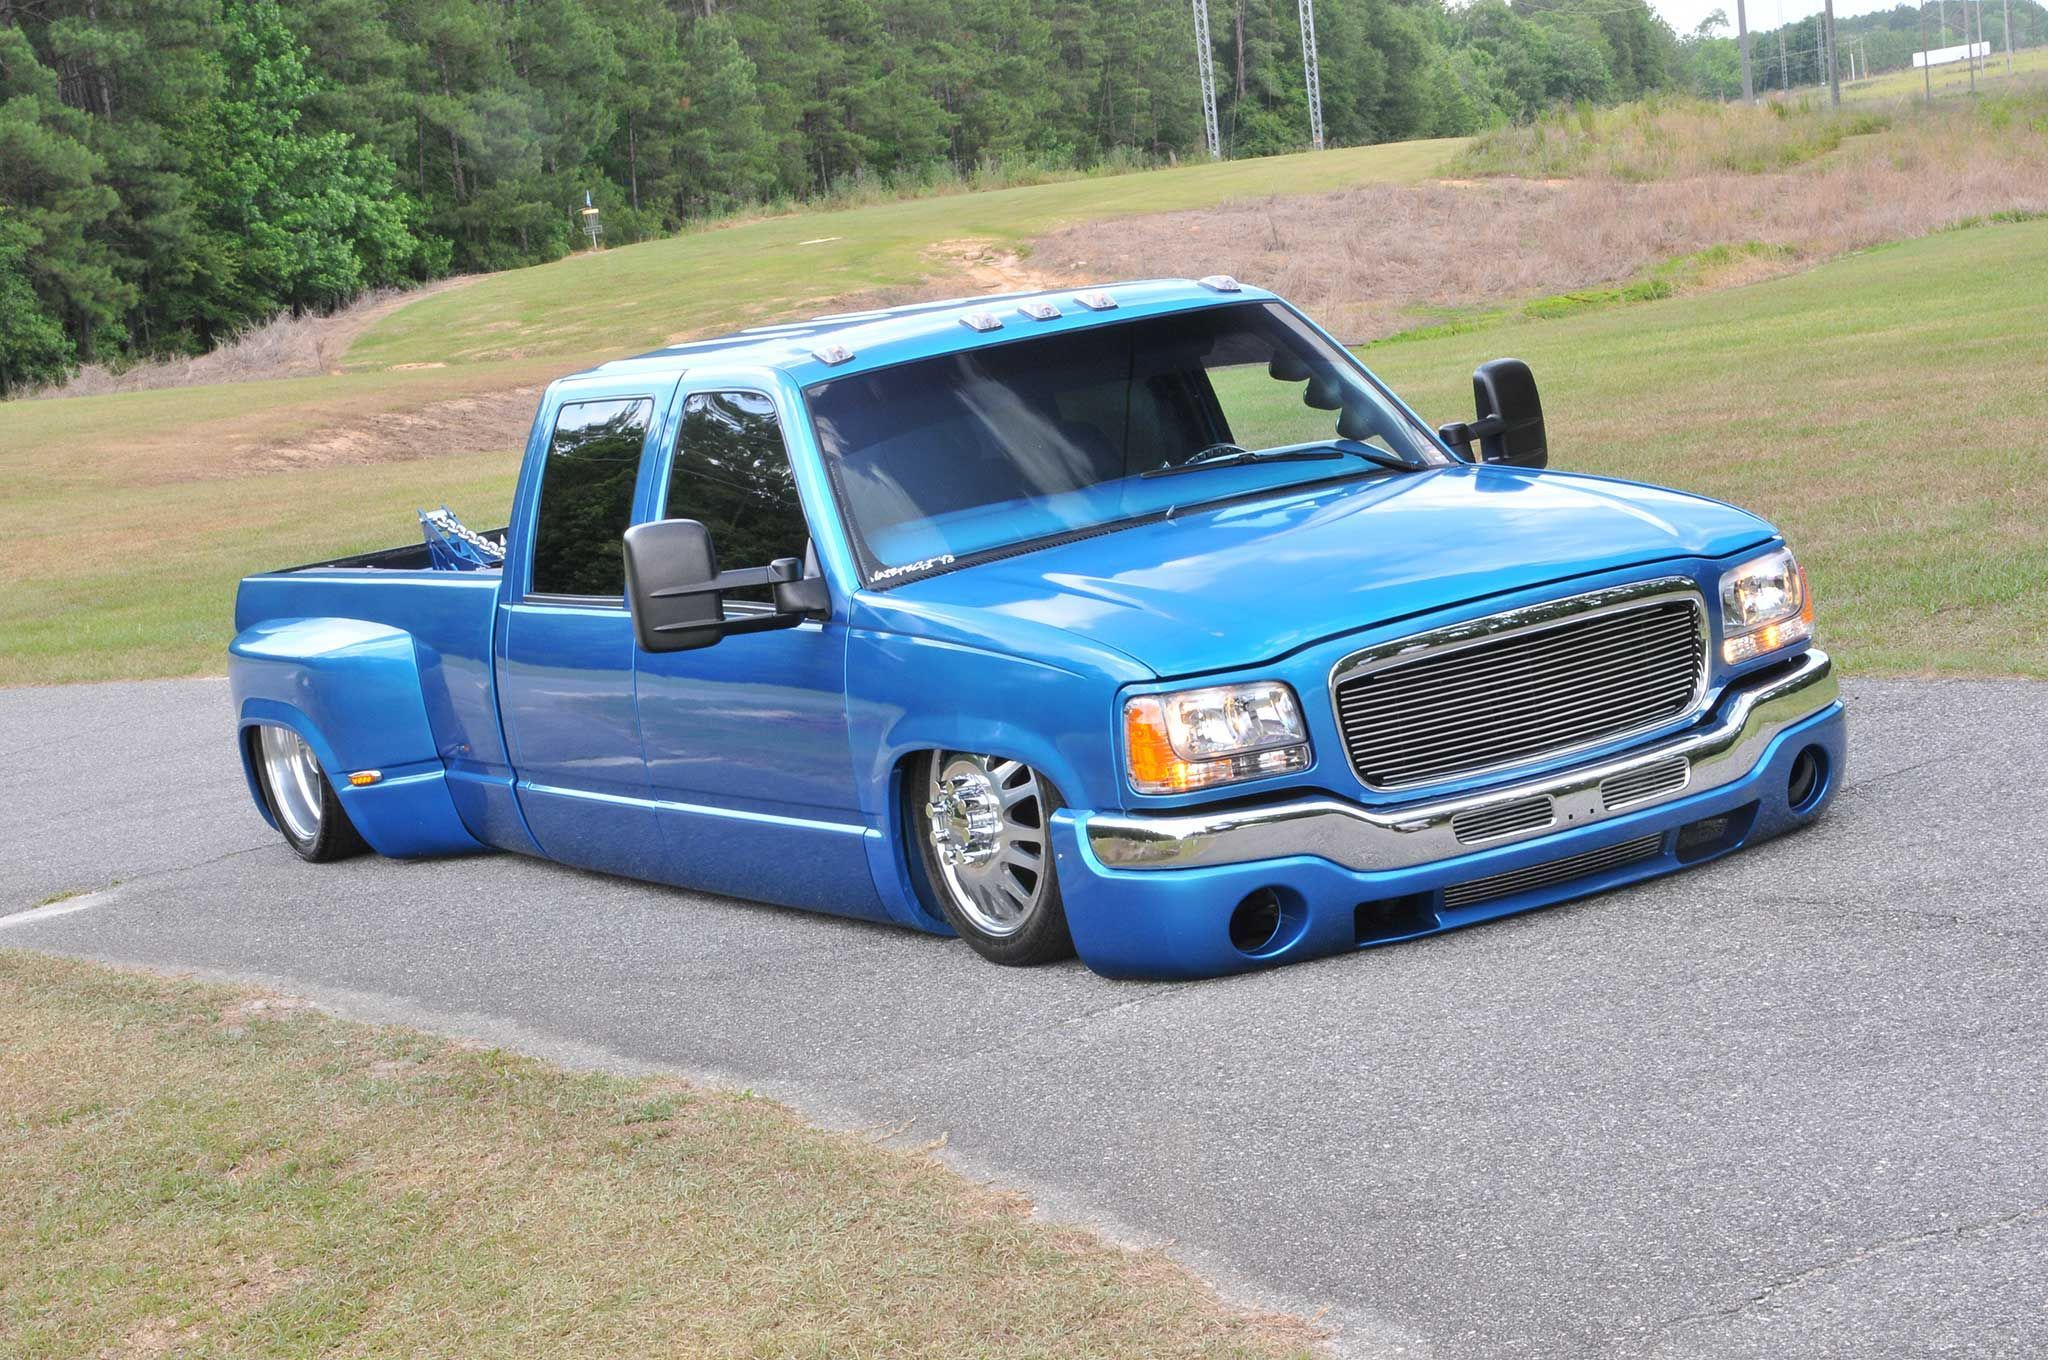 2000 chevy 3500 crew cab dually with escalade caddy front clip